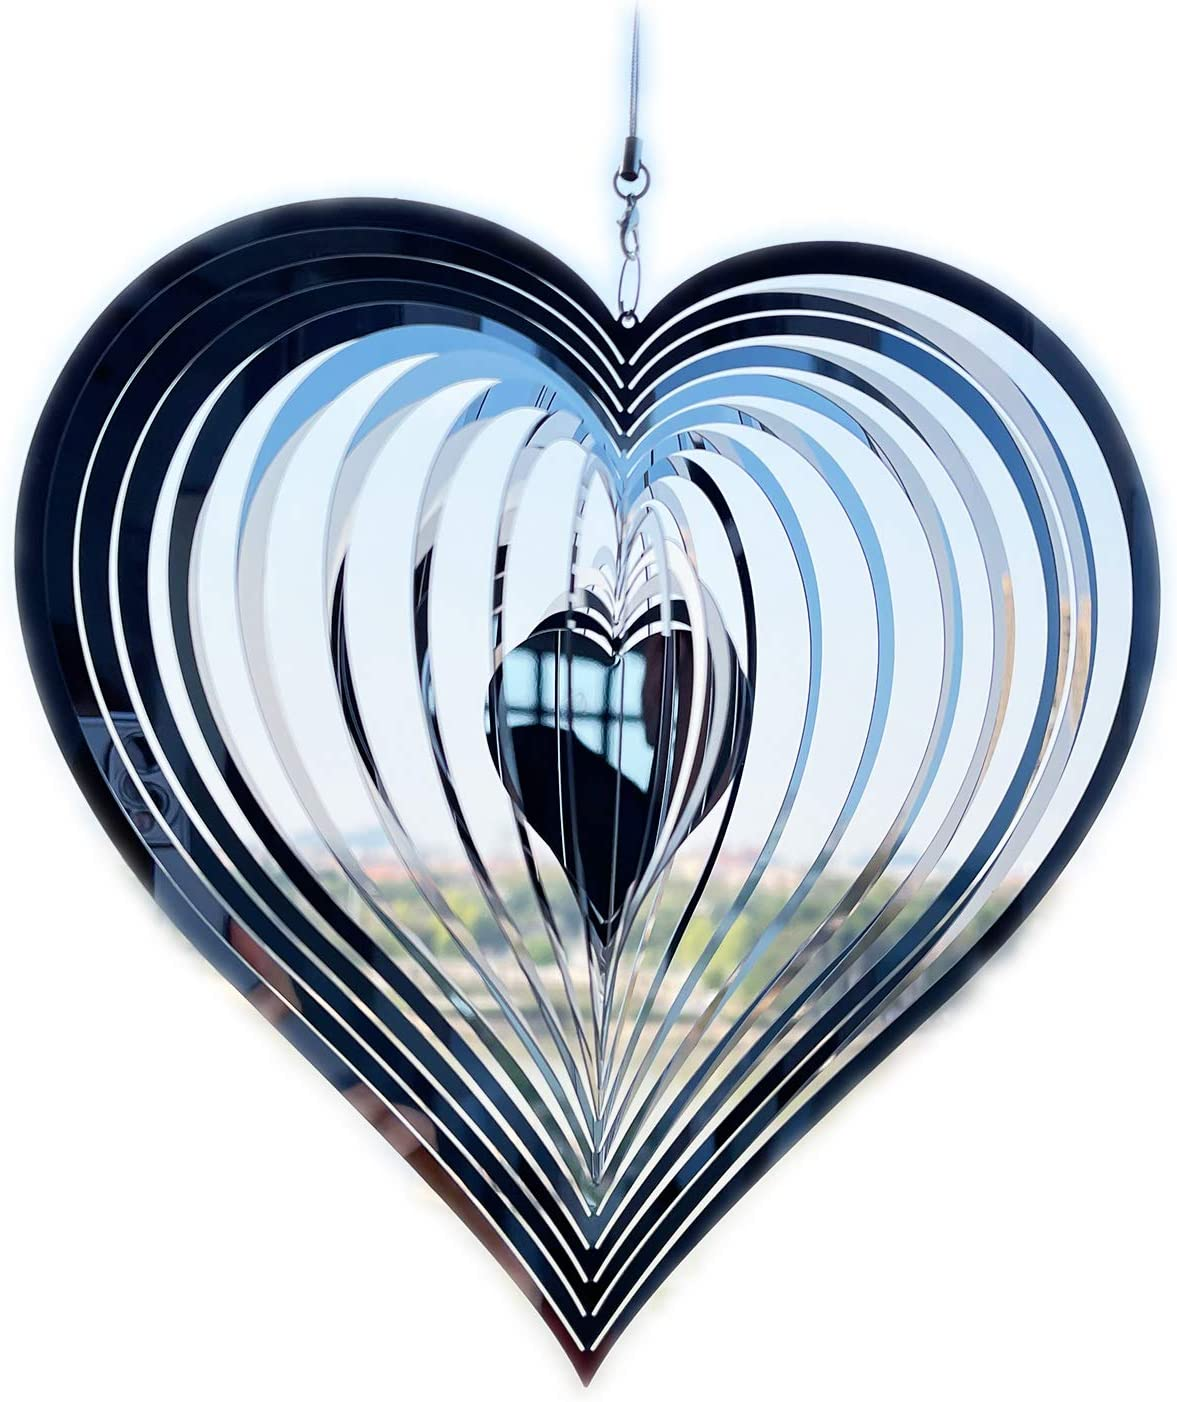 Nother Stainless Steel Wind Spinner Worth Gift Indoor Outdoor Garden Decoration Crafts Ornaments,3D Heart Pattern Crafts Ornaments Metal Wind Sculptures & Spinners Whirligig Gifts with 8inch